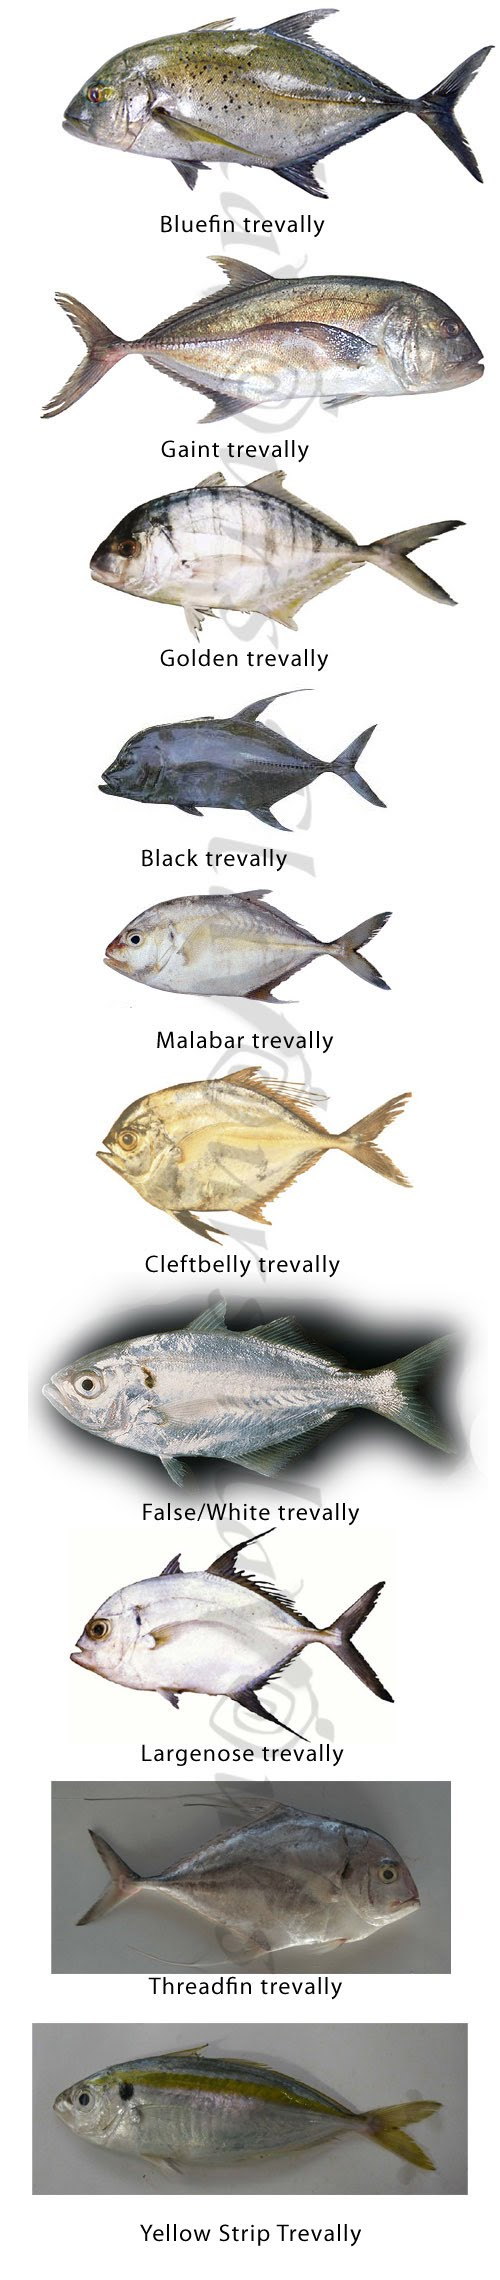 Trevally  - Click for a biJesh Salgger view